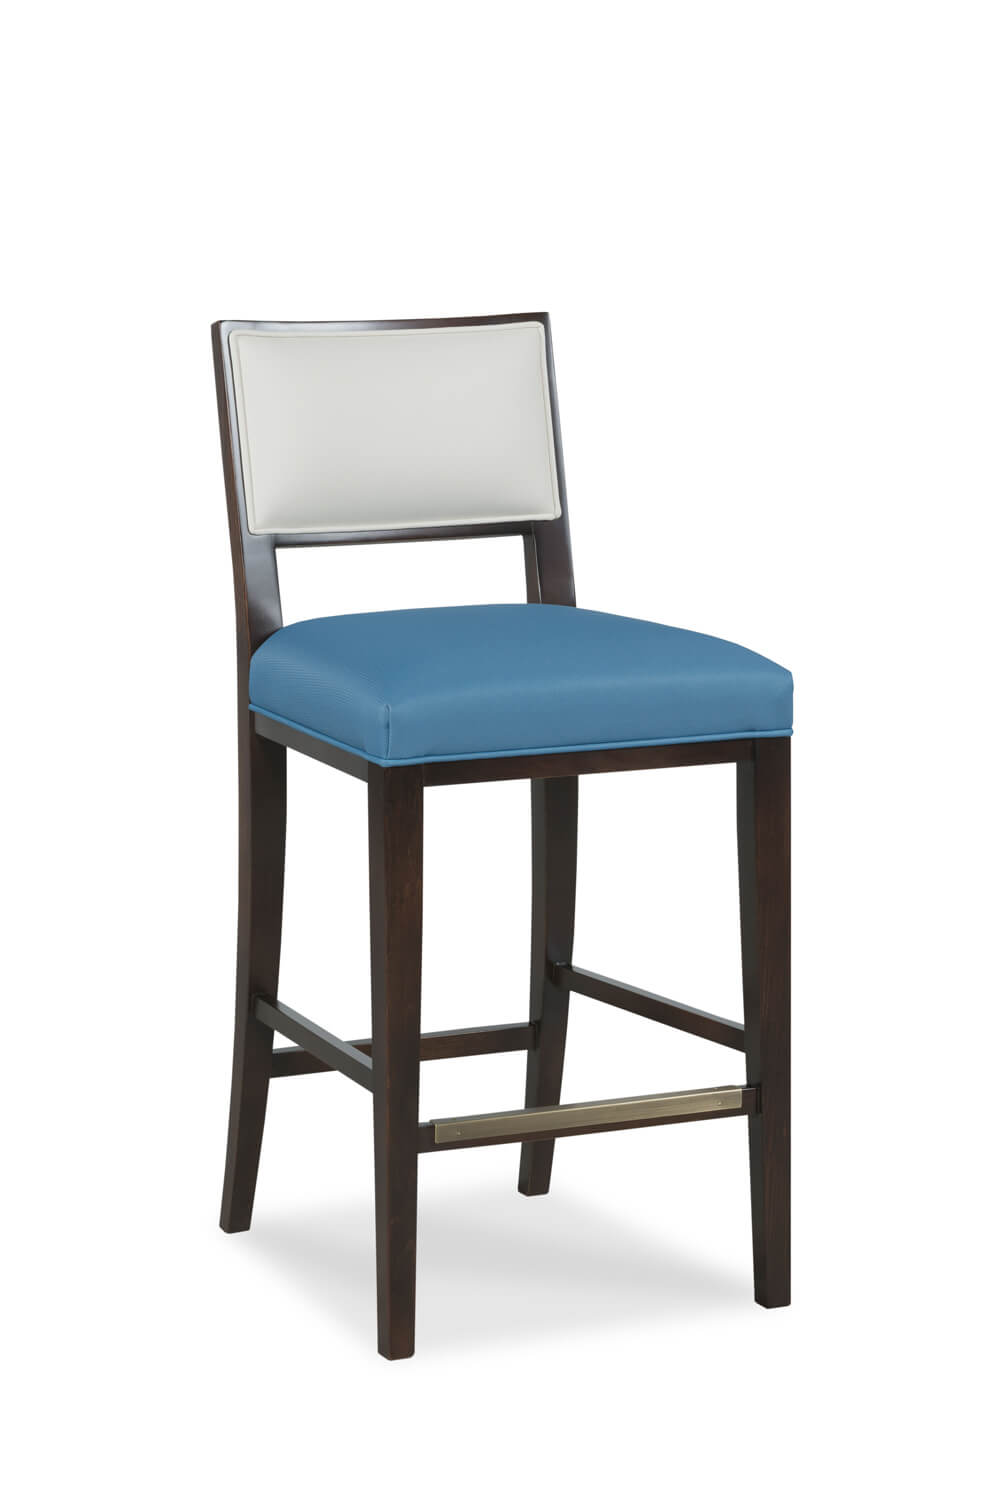 Fairfield's Dilworth Wooden Bar Stool with Back and Seat Cushion